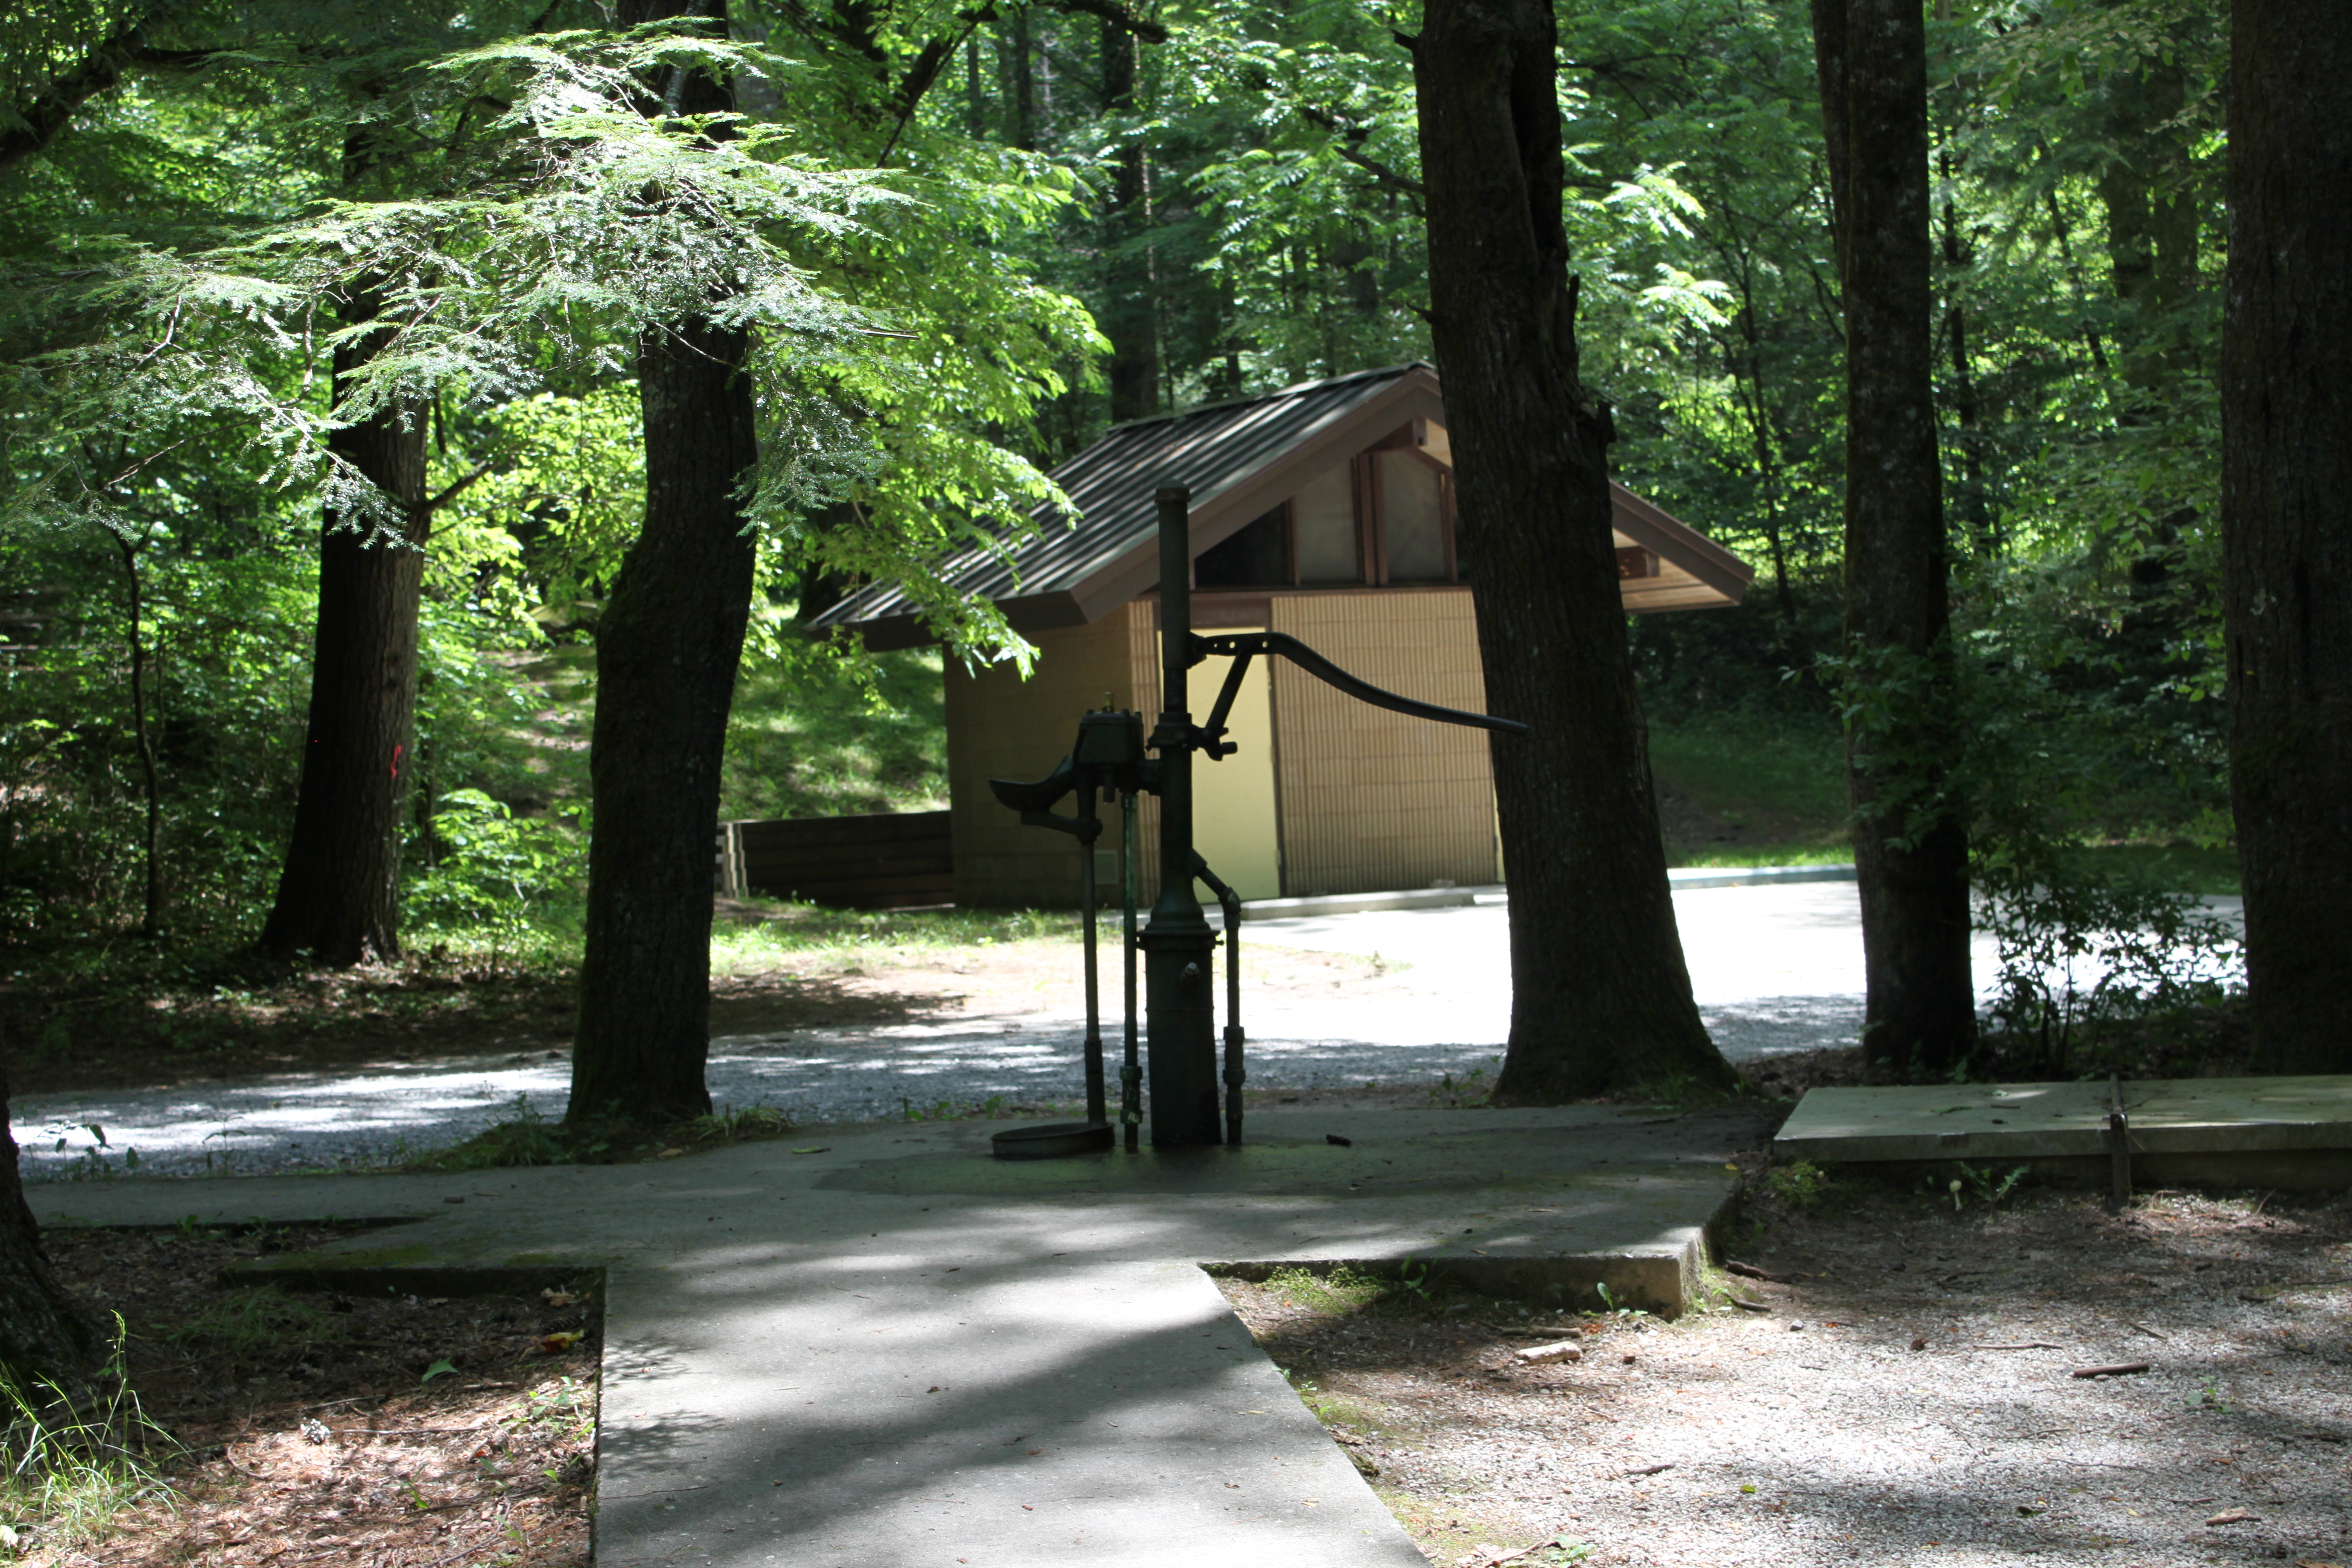 Chattahoochee-Oconee National Forests - Tate Branch Campground